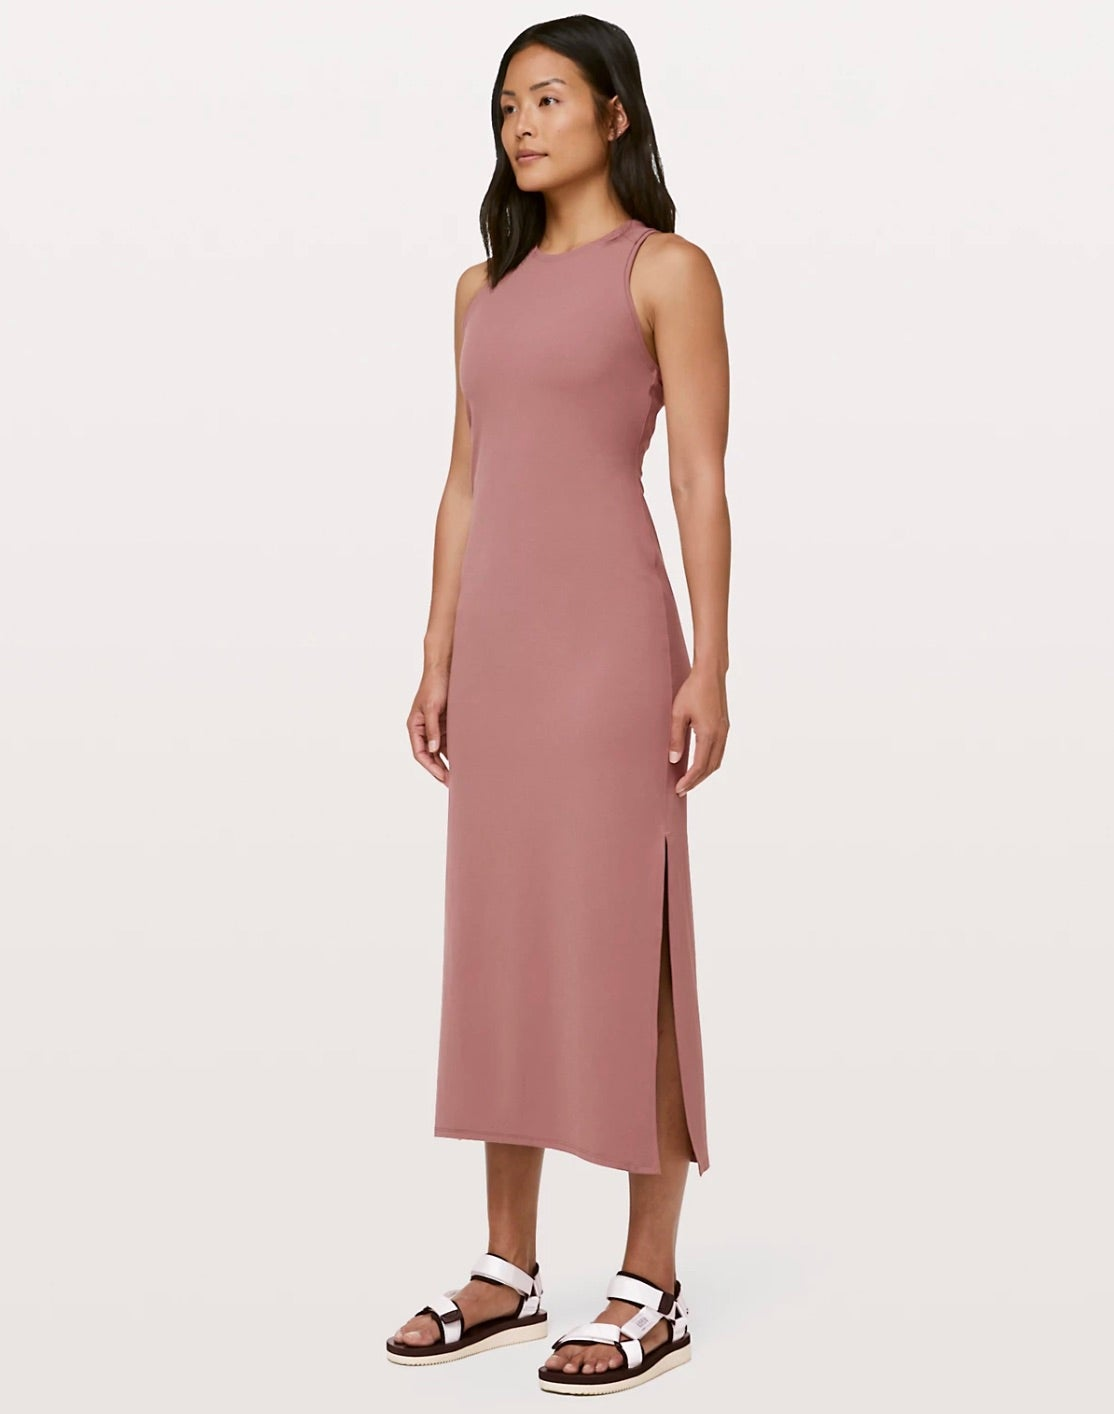 Lululemon Get Going Dress